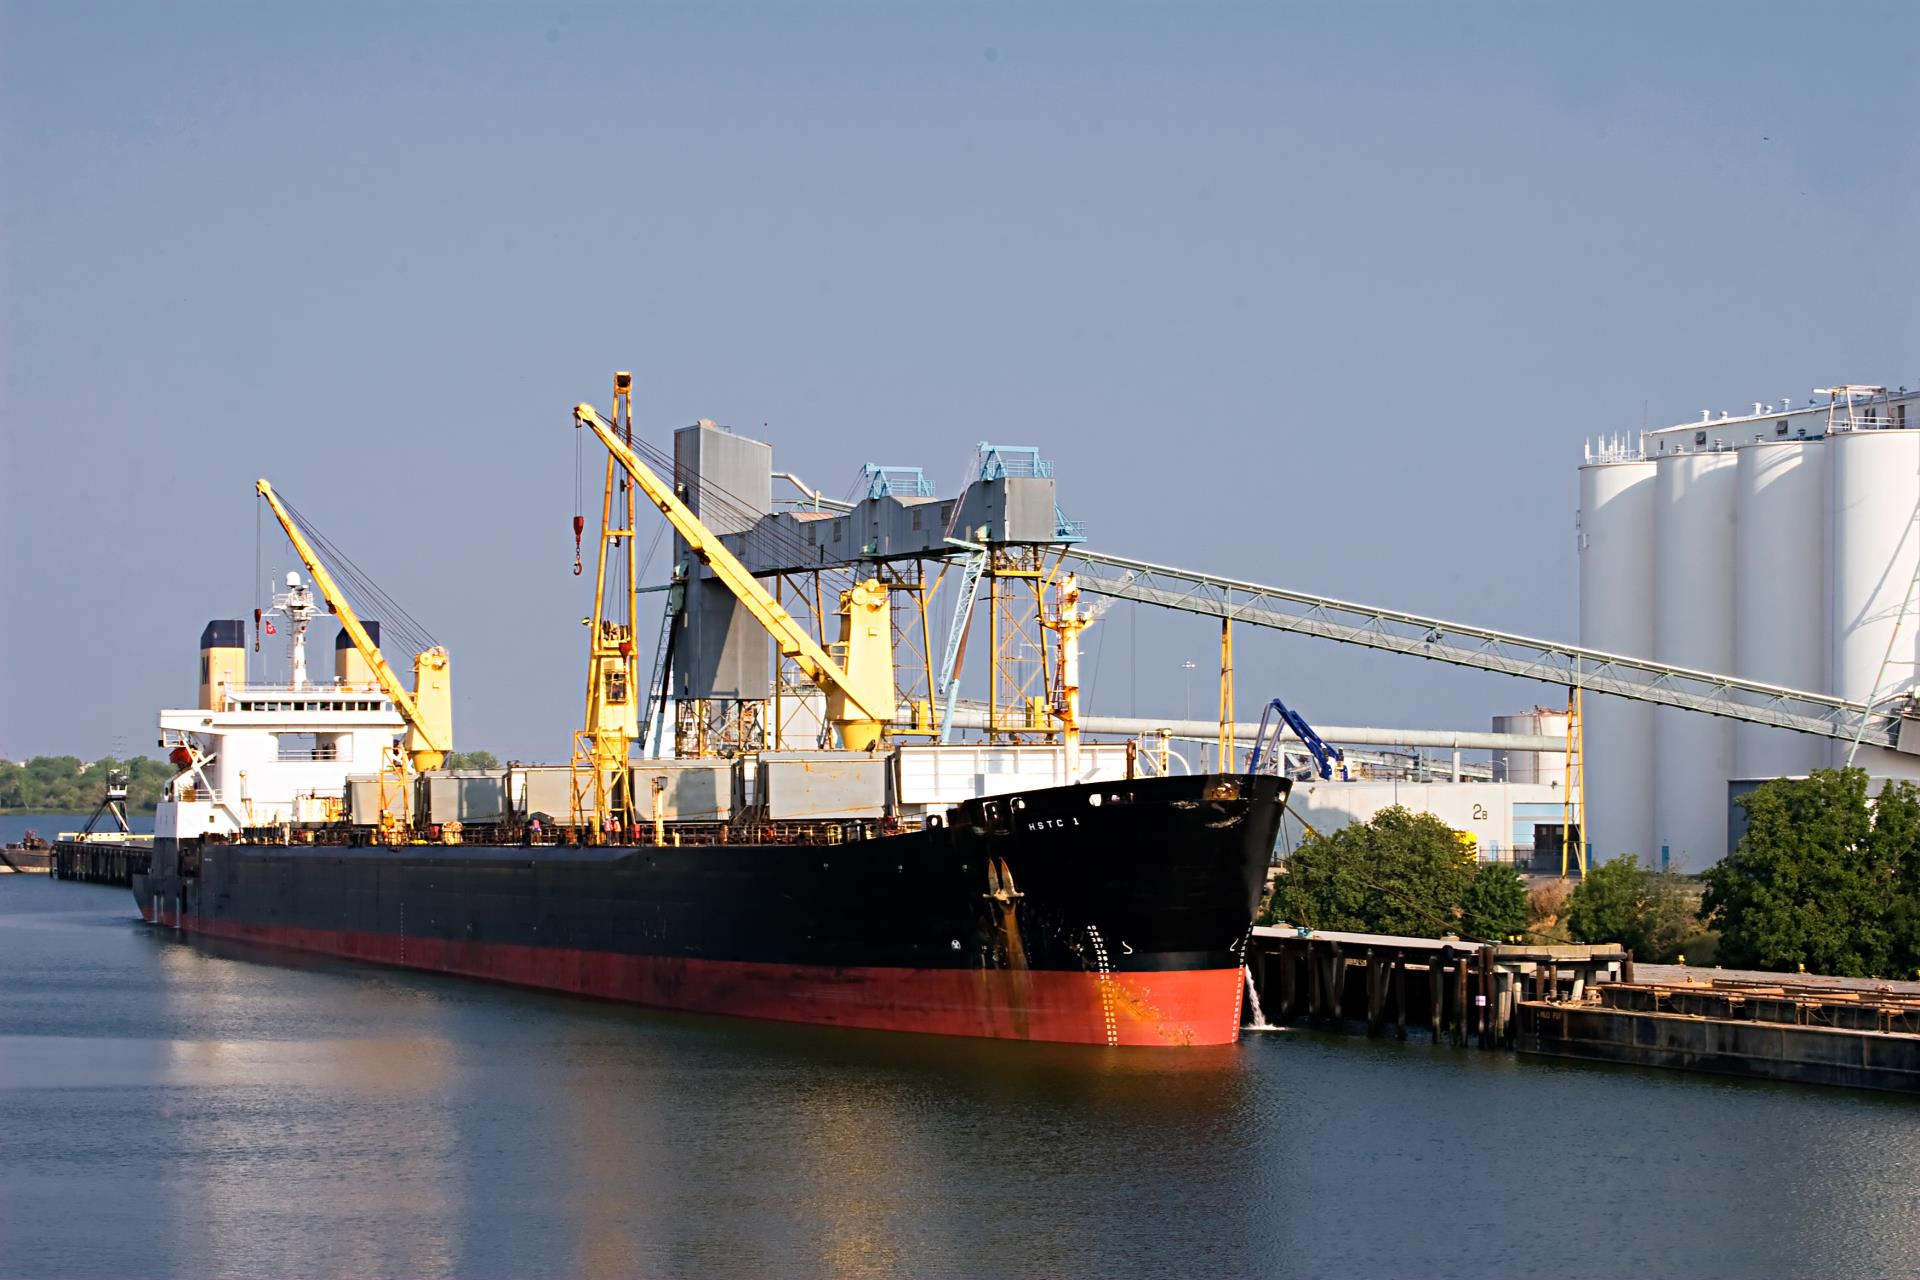 Ship in Port of West Sacramento